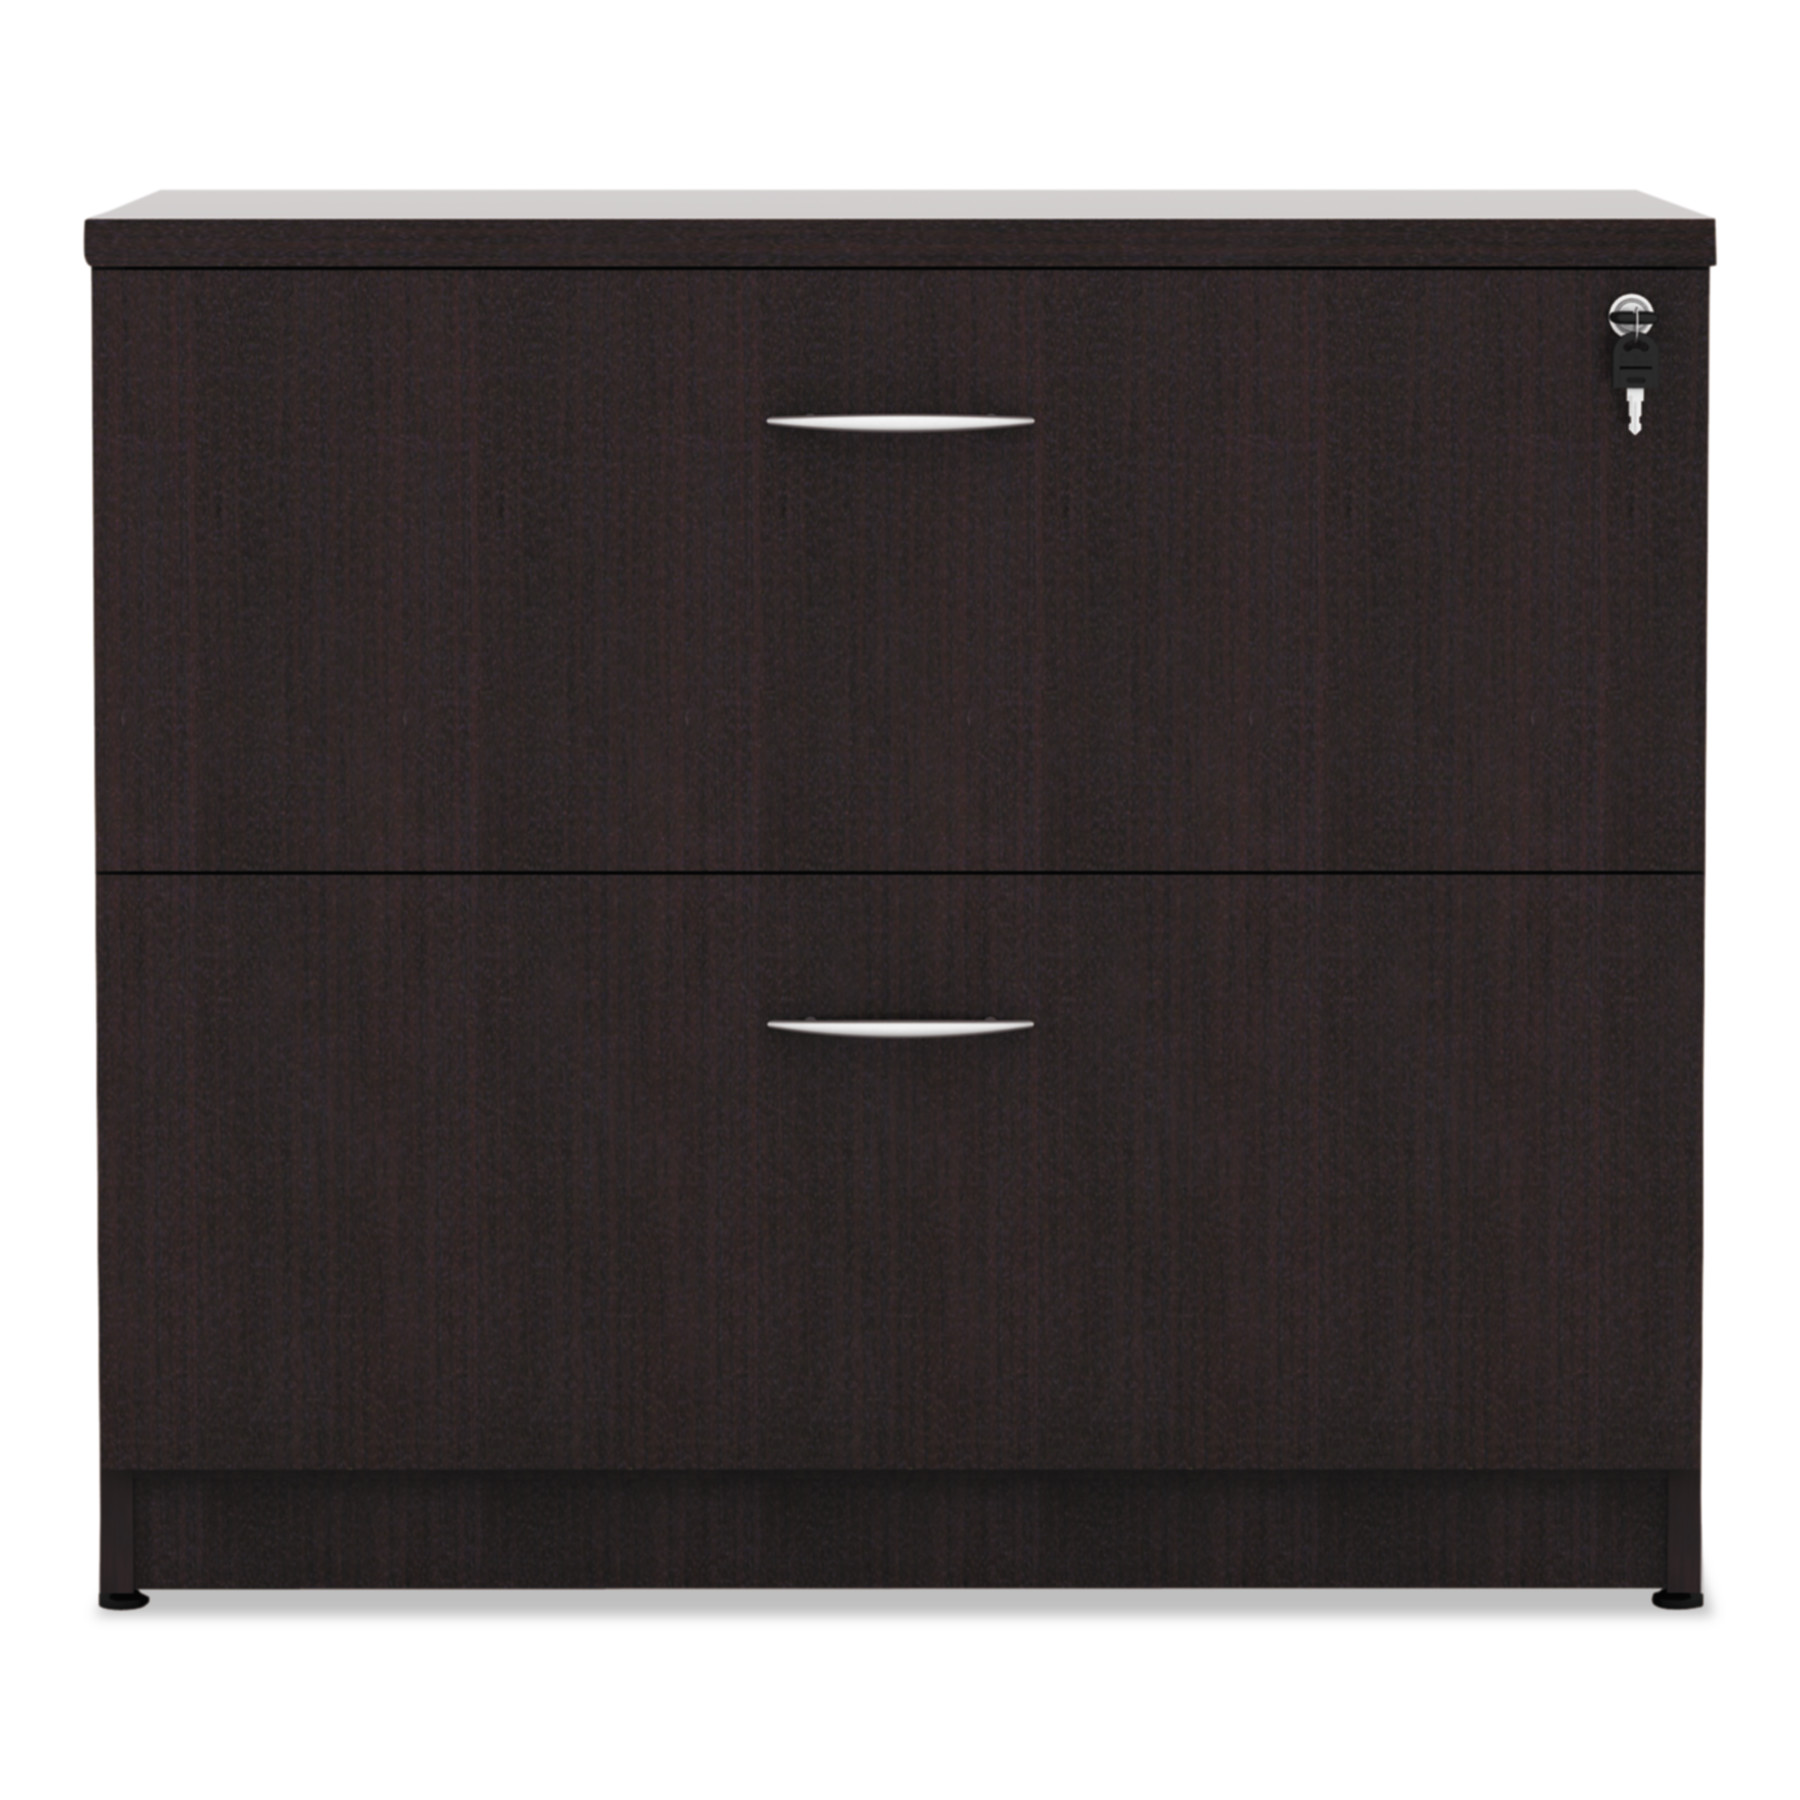 Alera 2 Drawers Lateral Lockable Filing Cabinet Espresso  sc 1 st  Walmart & Alera 2 Drawers Lateral Lockable Filing Cabinet Espresso - Walmart.com